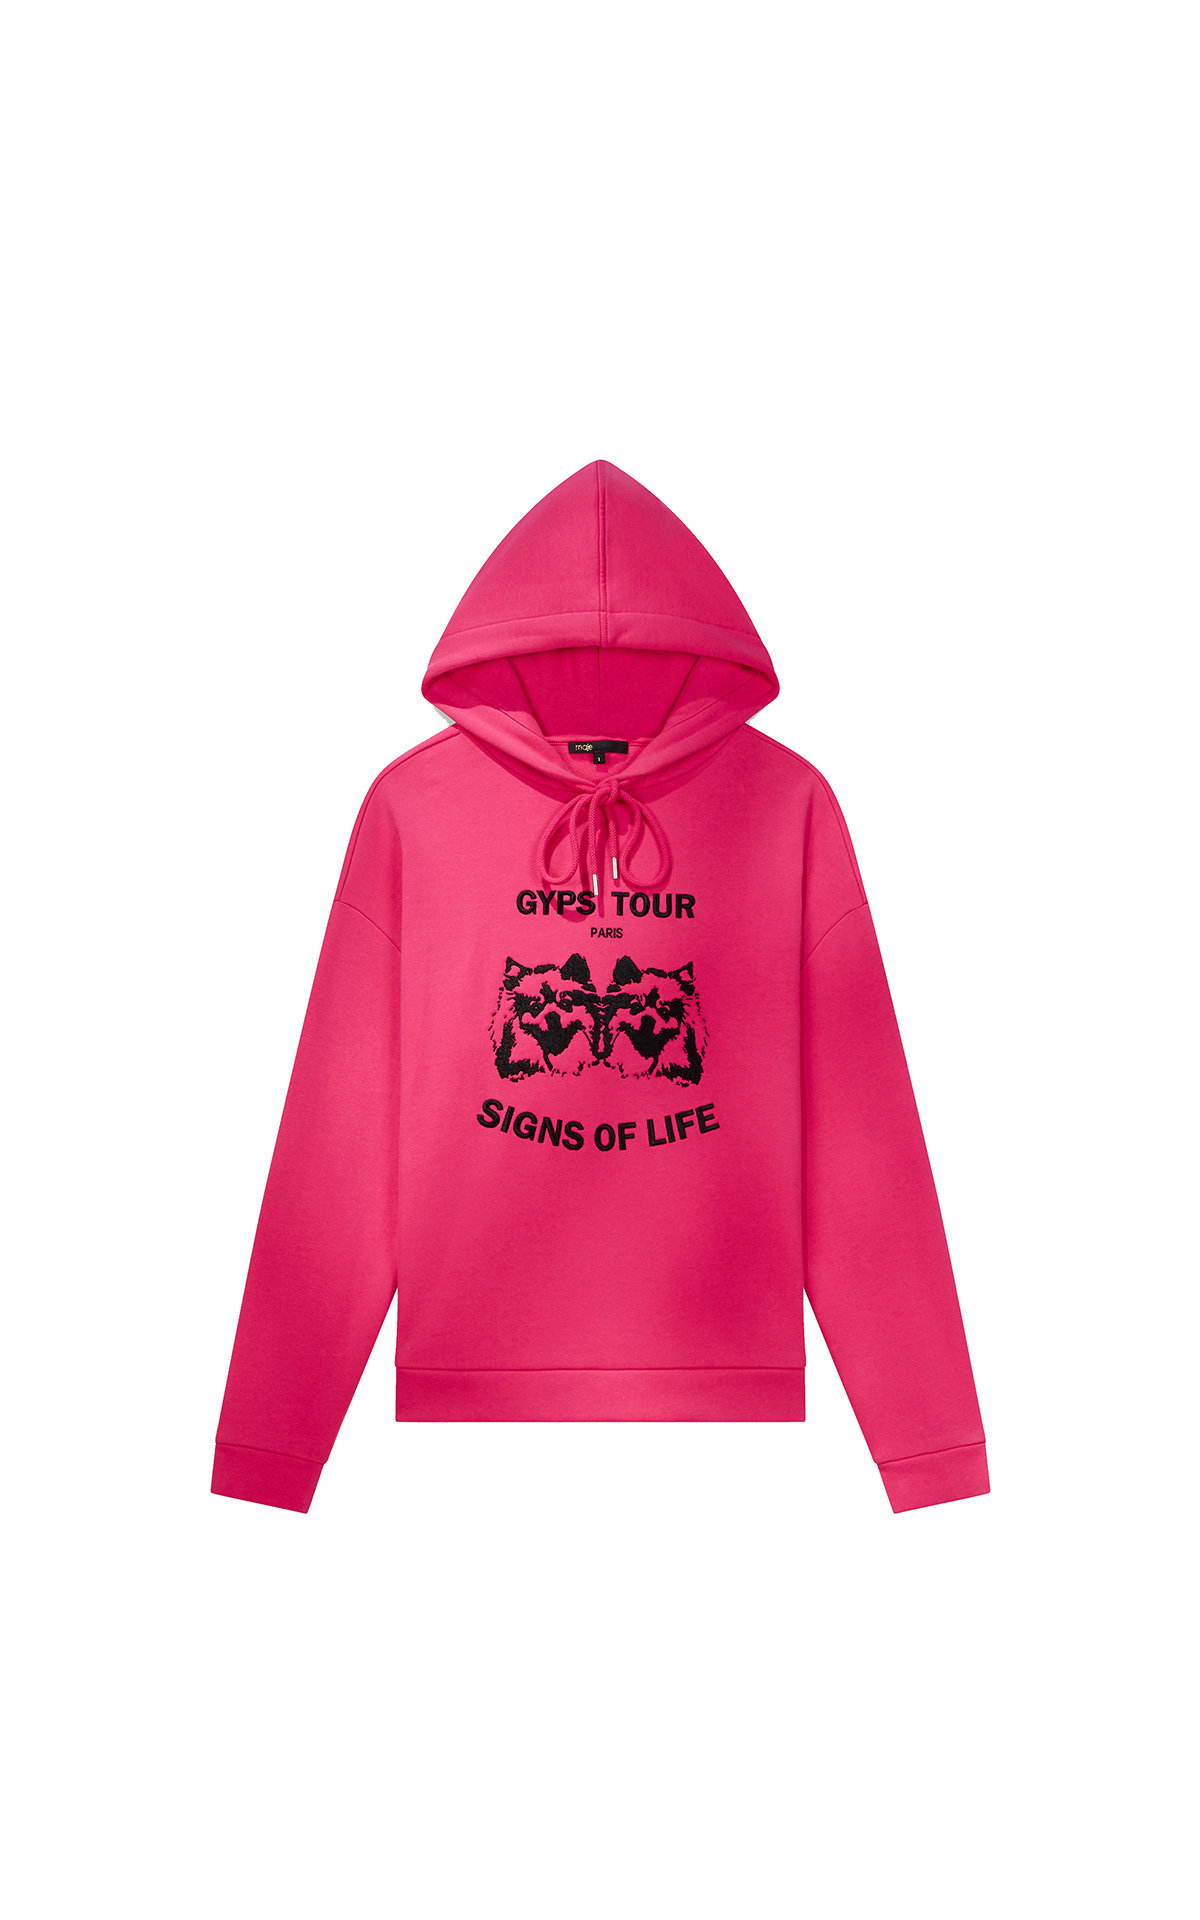 Maje Embroidered hooded sweatshirt in neon pink at The Bicester Village Shopping Collection